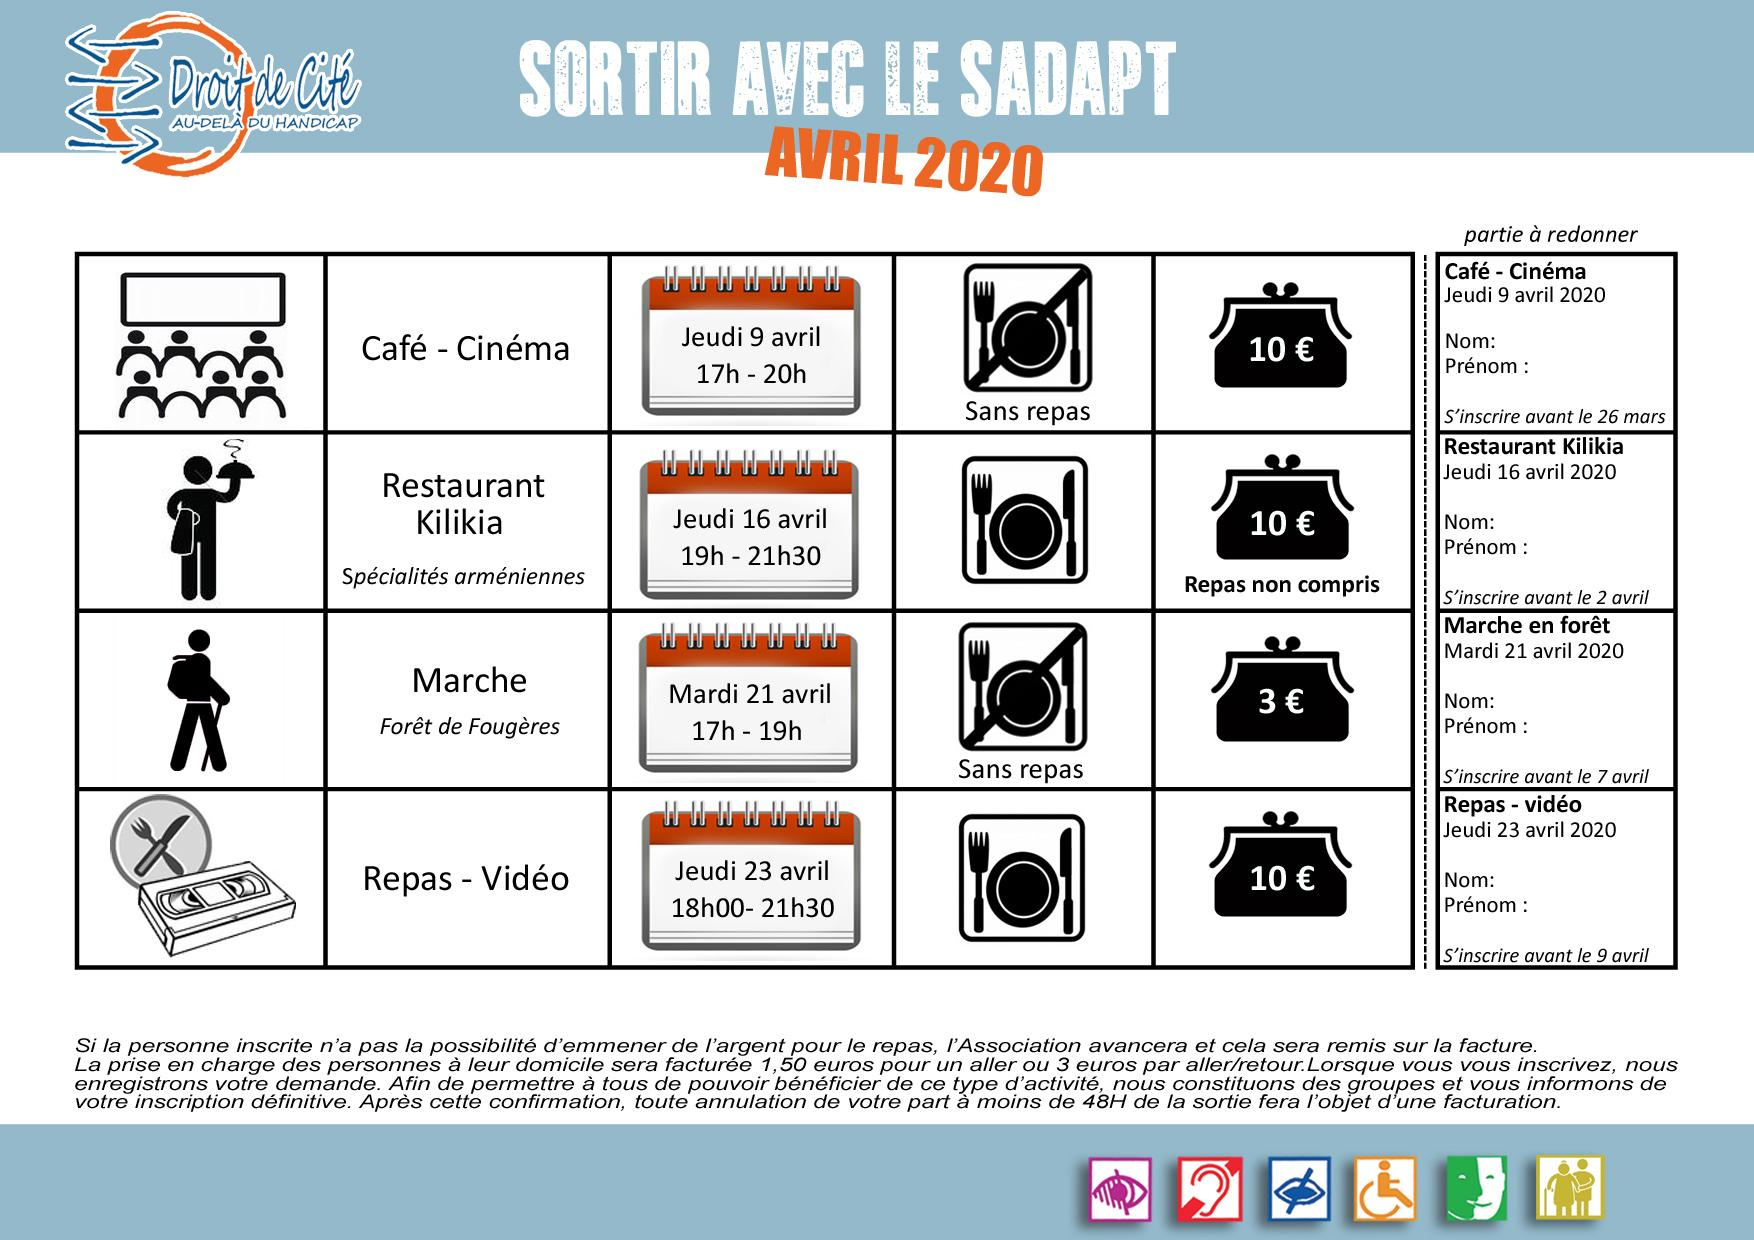 Sorties avril 2020 sadapt